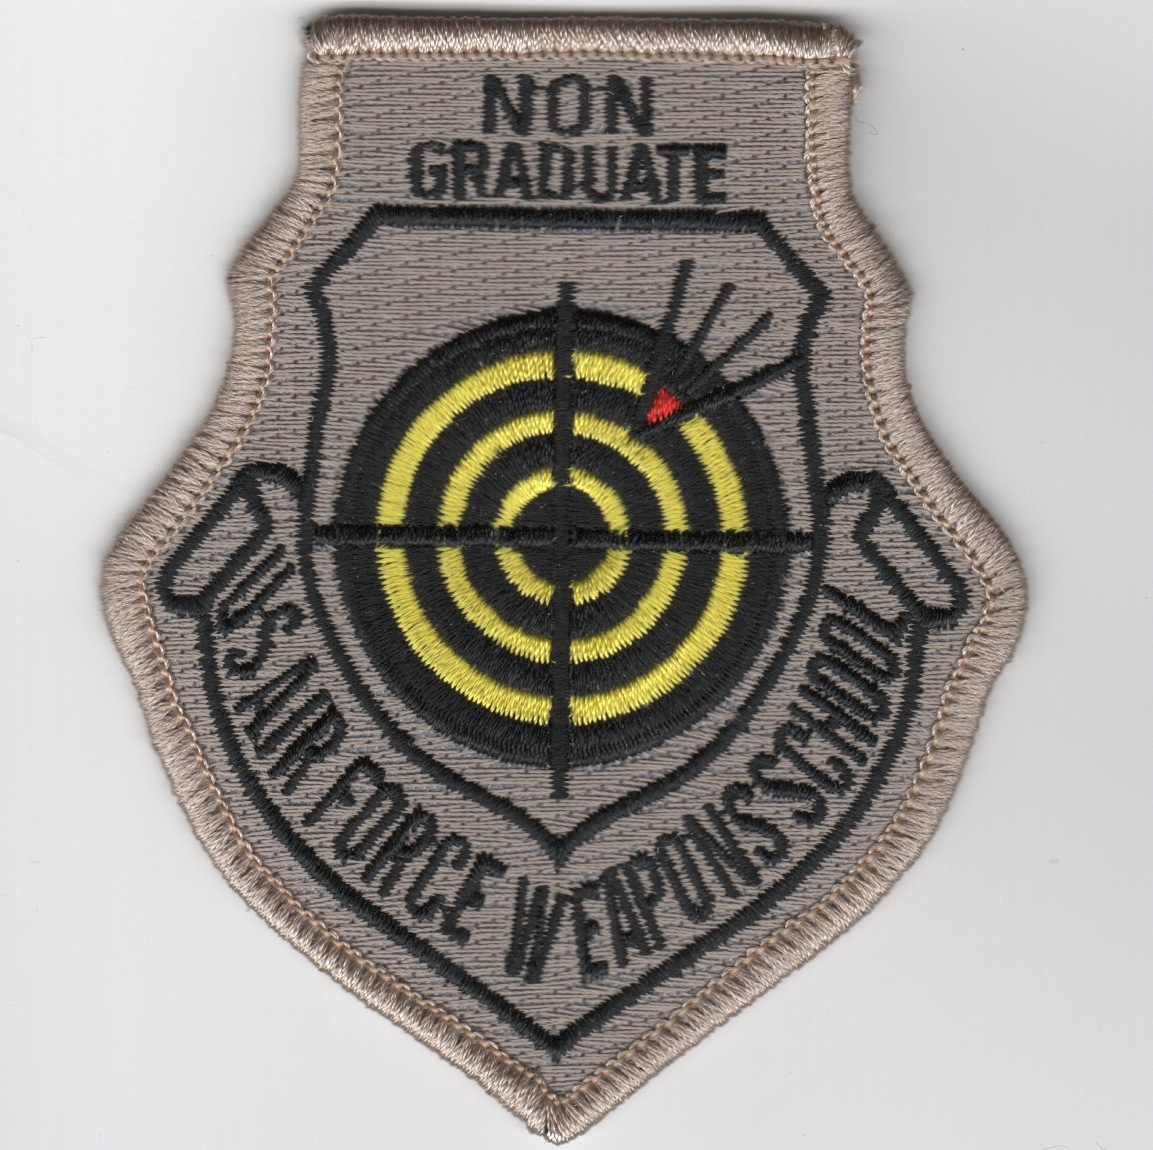 USAF Weapons School NON-Graduate Patch (No Velcro)